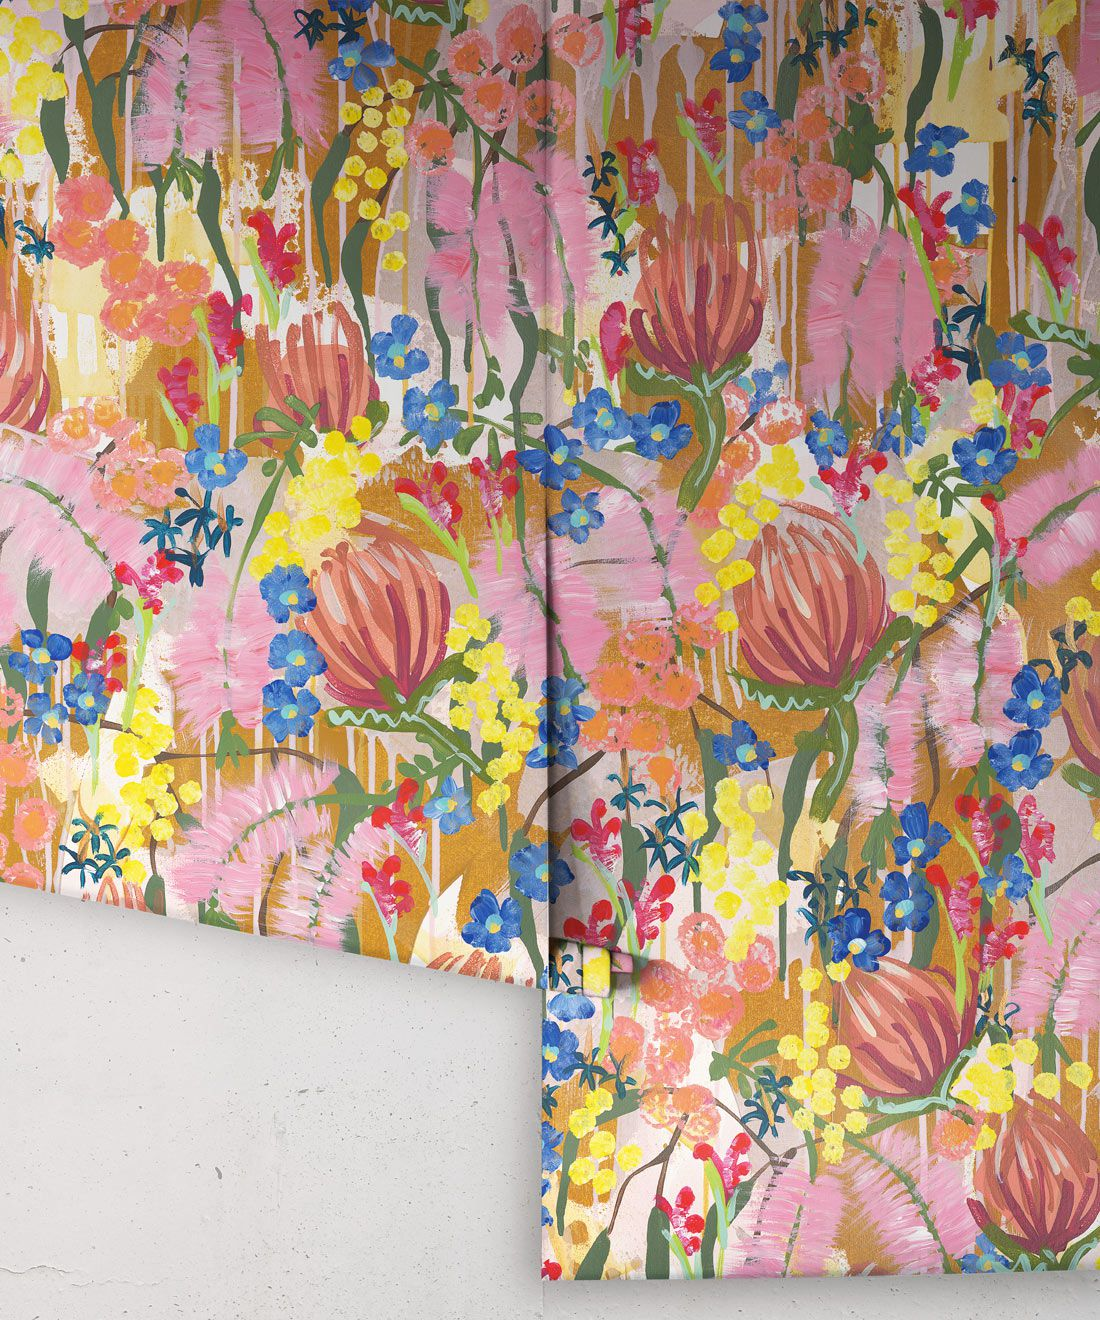 Acacia Wallpaper •Colorful Floral Wallpaper • Tiff Manuell • Abstract Expressionist Wallpaper • Rolls